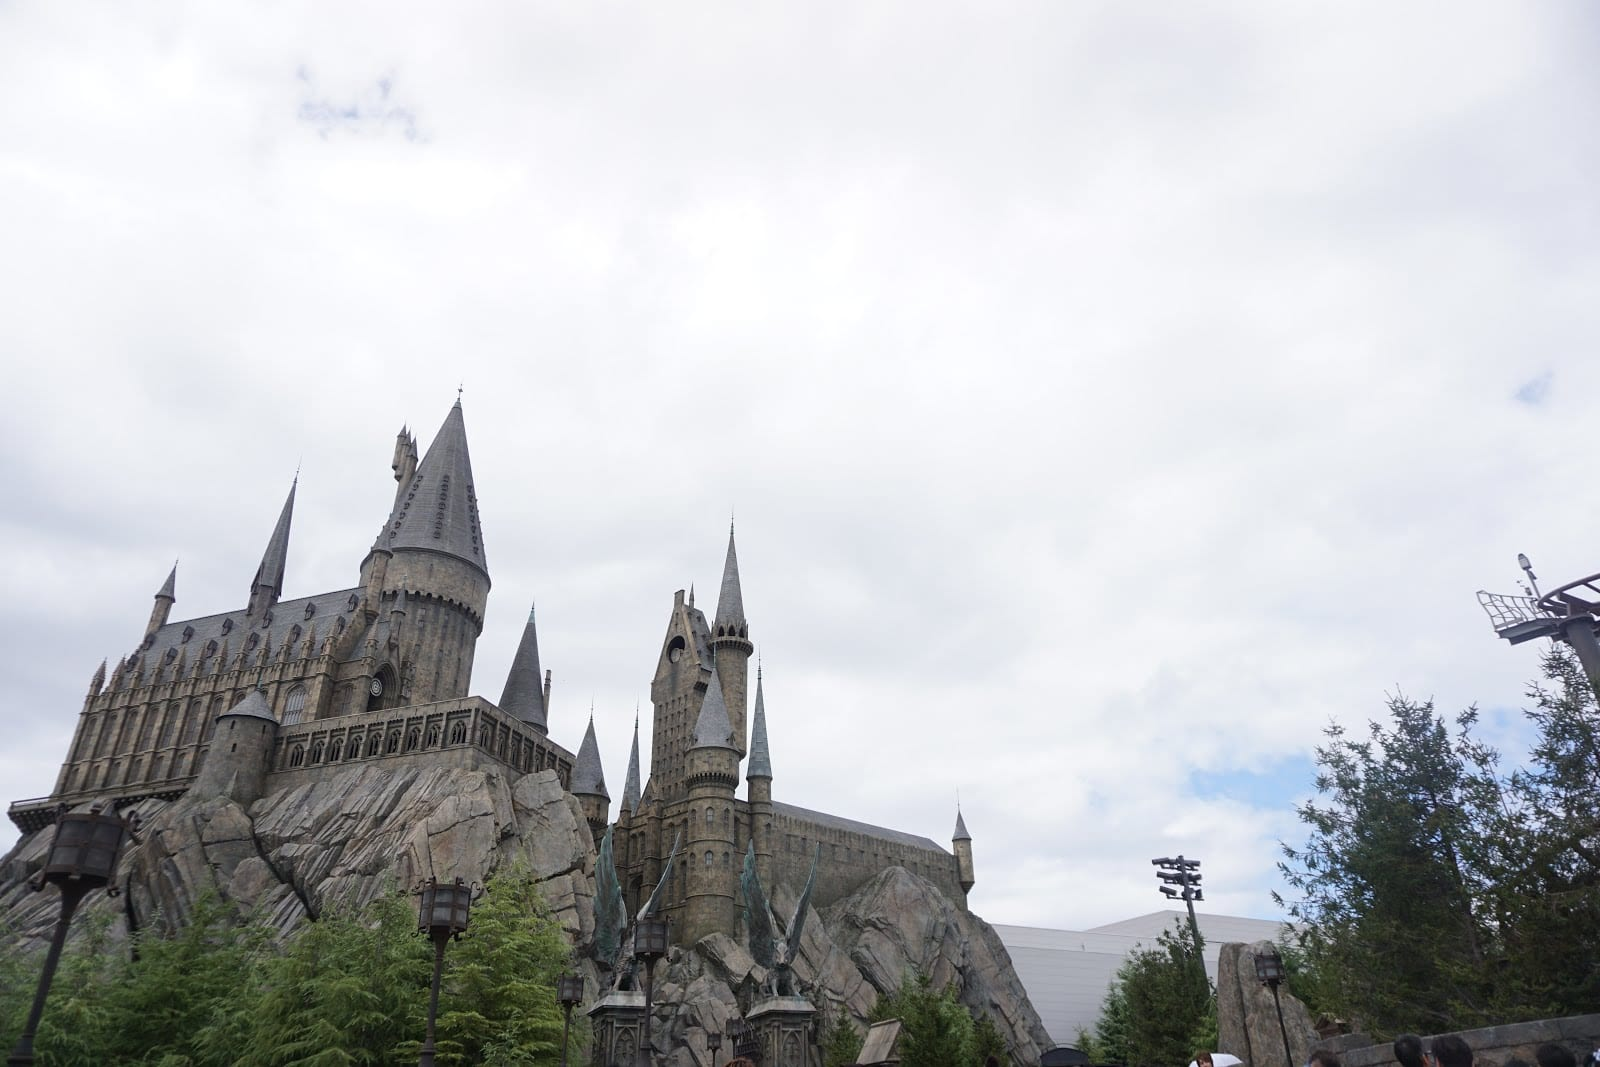 Wizarding World of Harry Potter - Hogwarts Castle